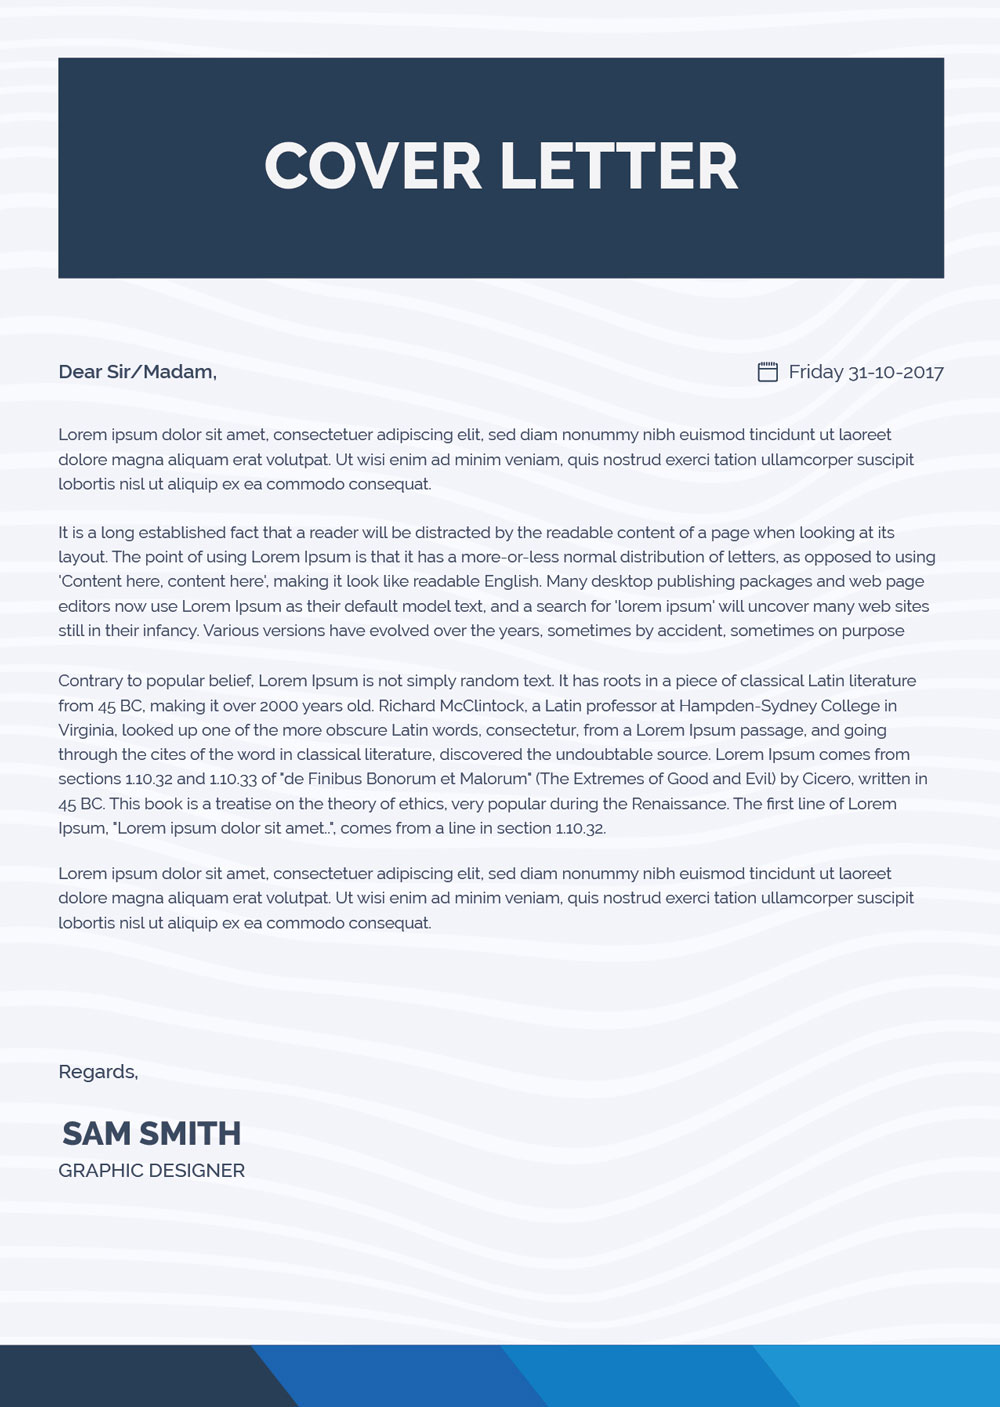 free ai resume  cv   cover letter  u0026 portfolio template for